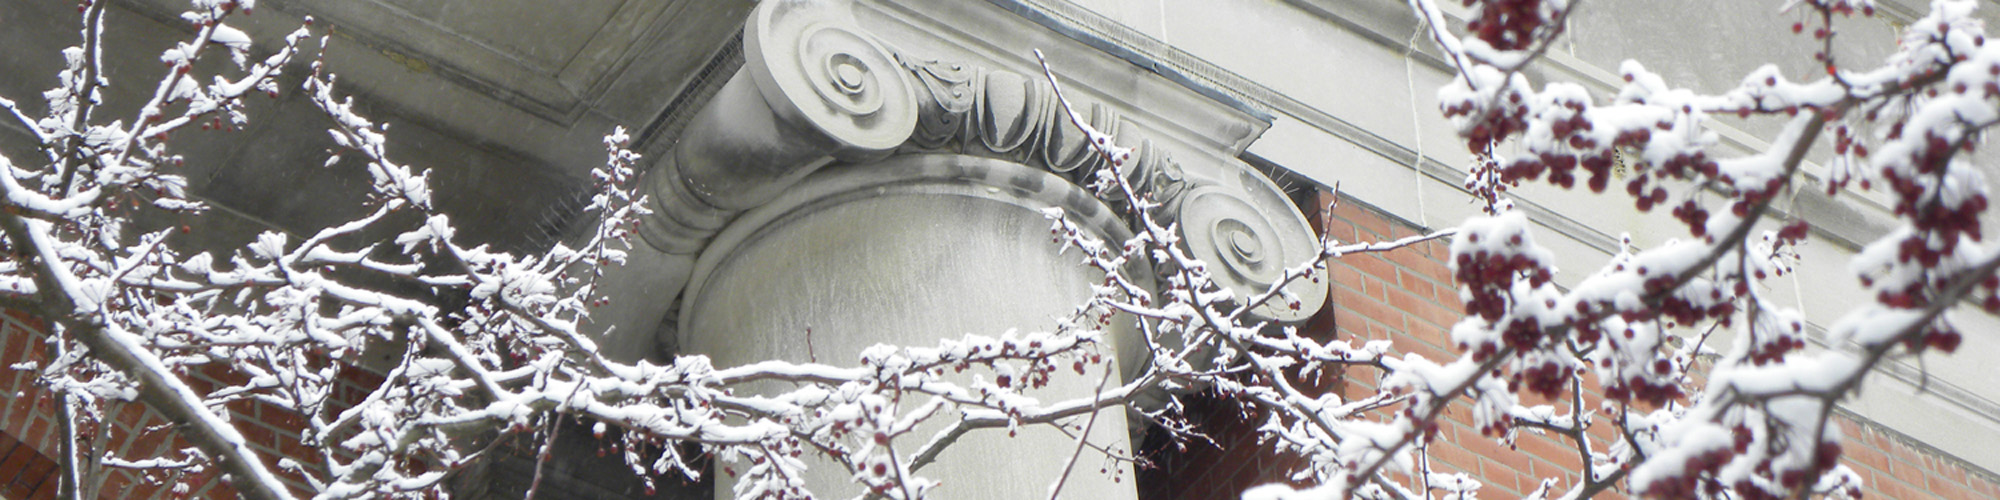 Snow outside Old Main